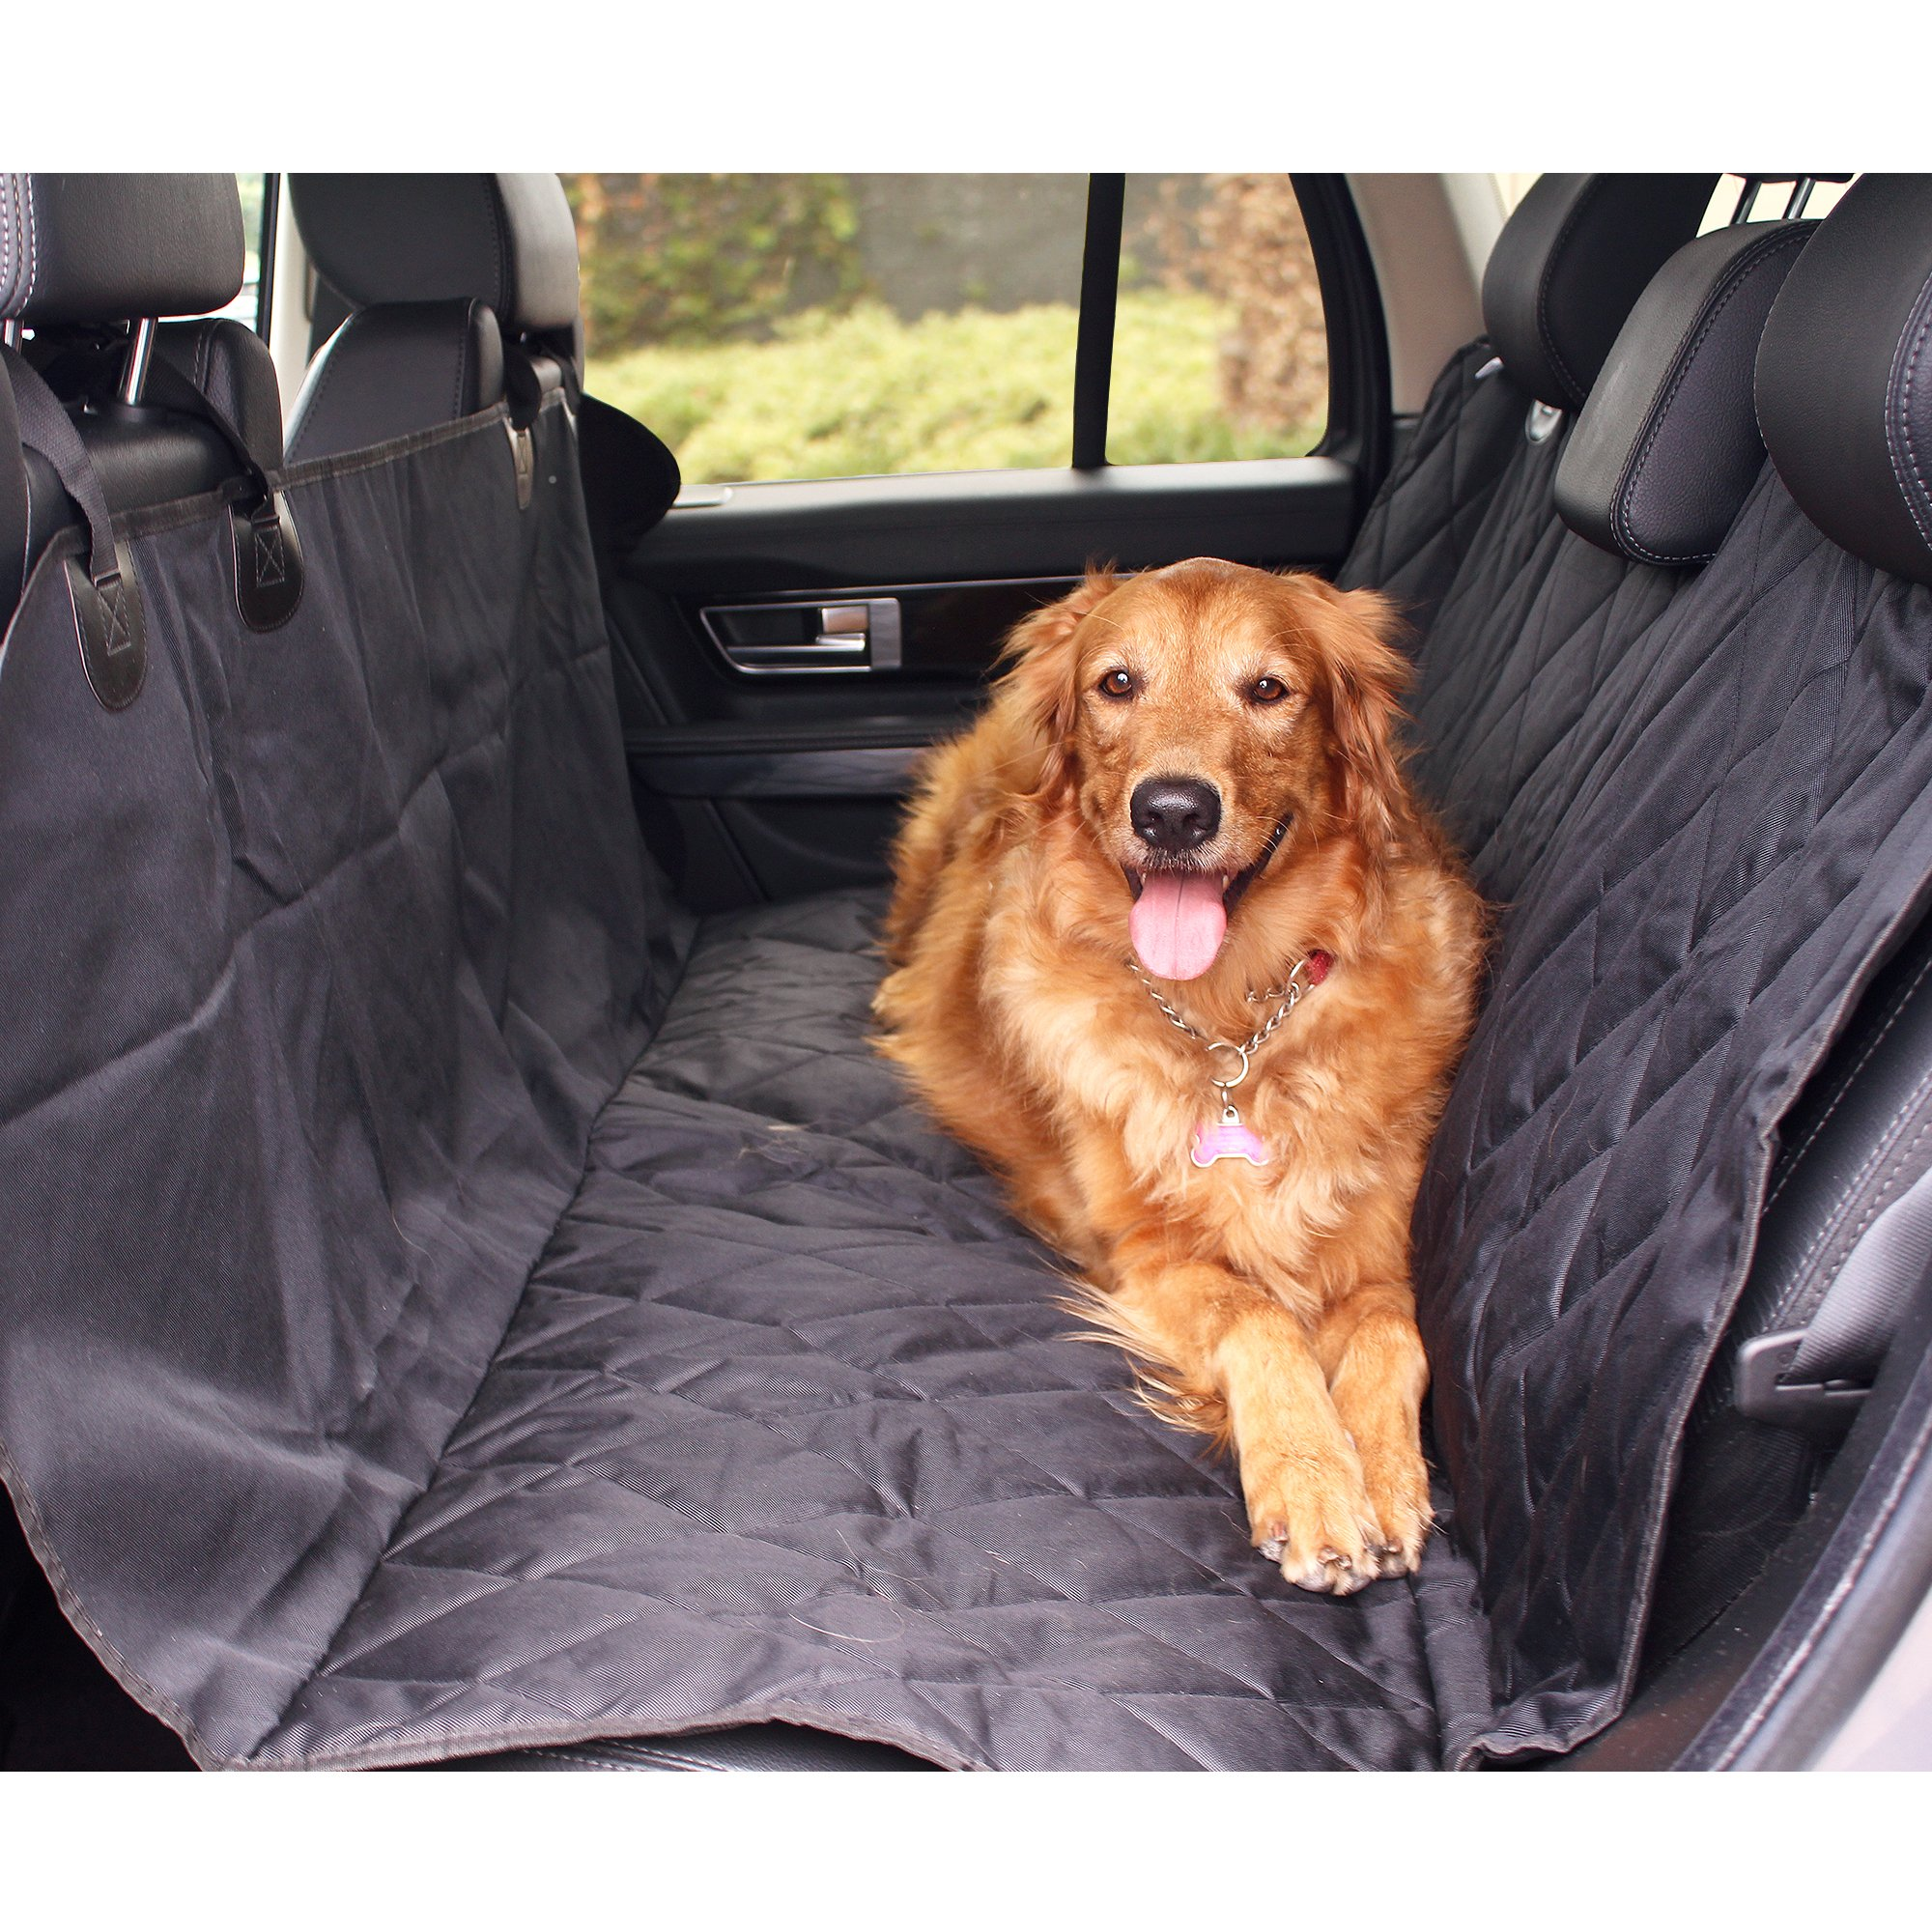 BarksBar Pet Car Seat Cover with Seat Anchors for Cars, Trucks and SUV's, Water Proof and Non-Slip Backing Regular, Black by BarksBar (Image #2)